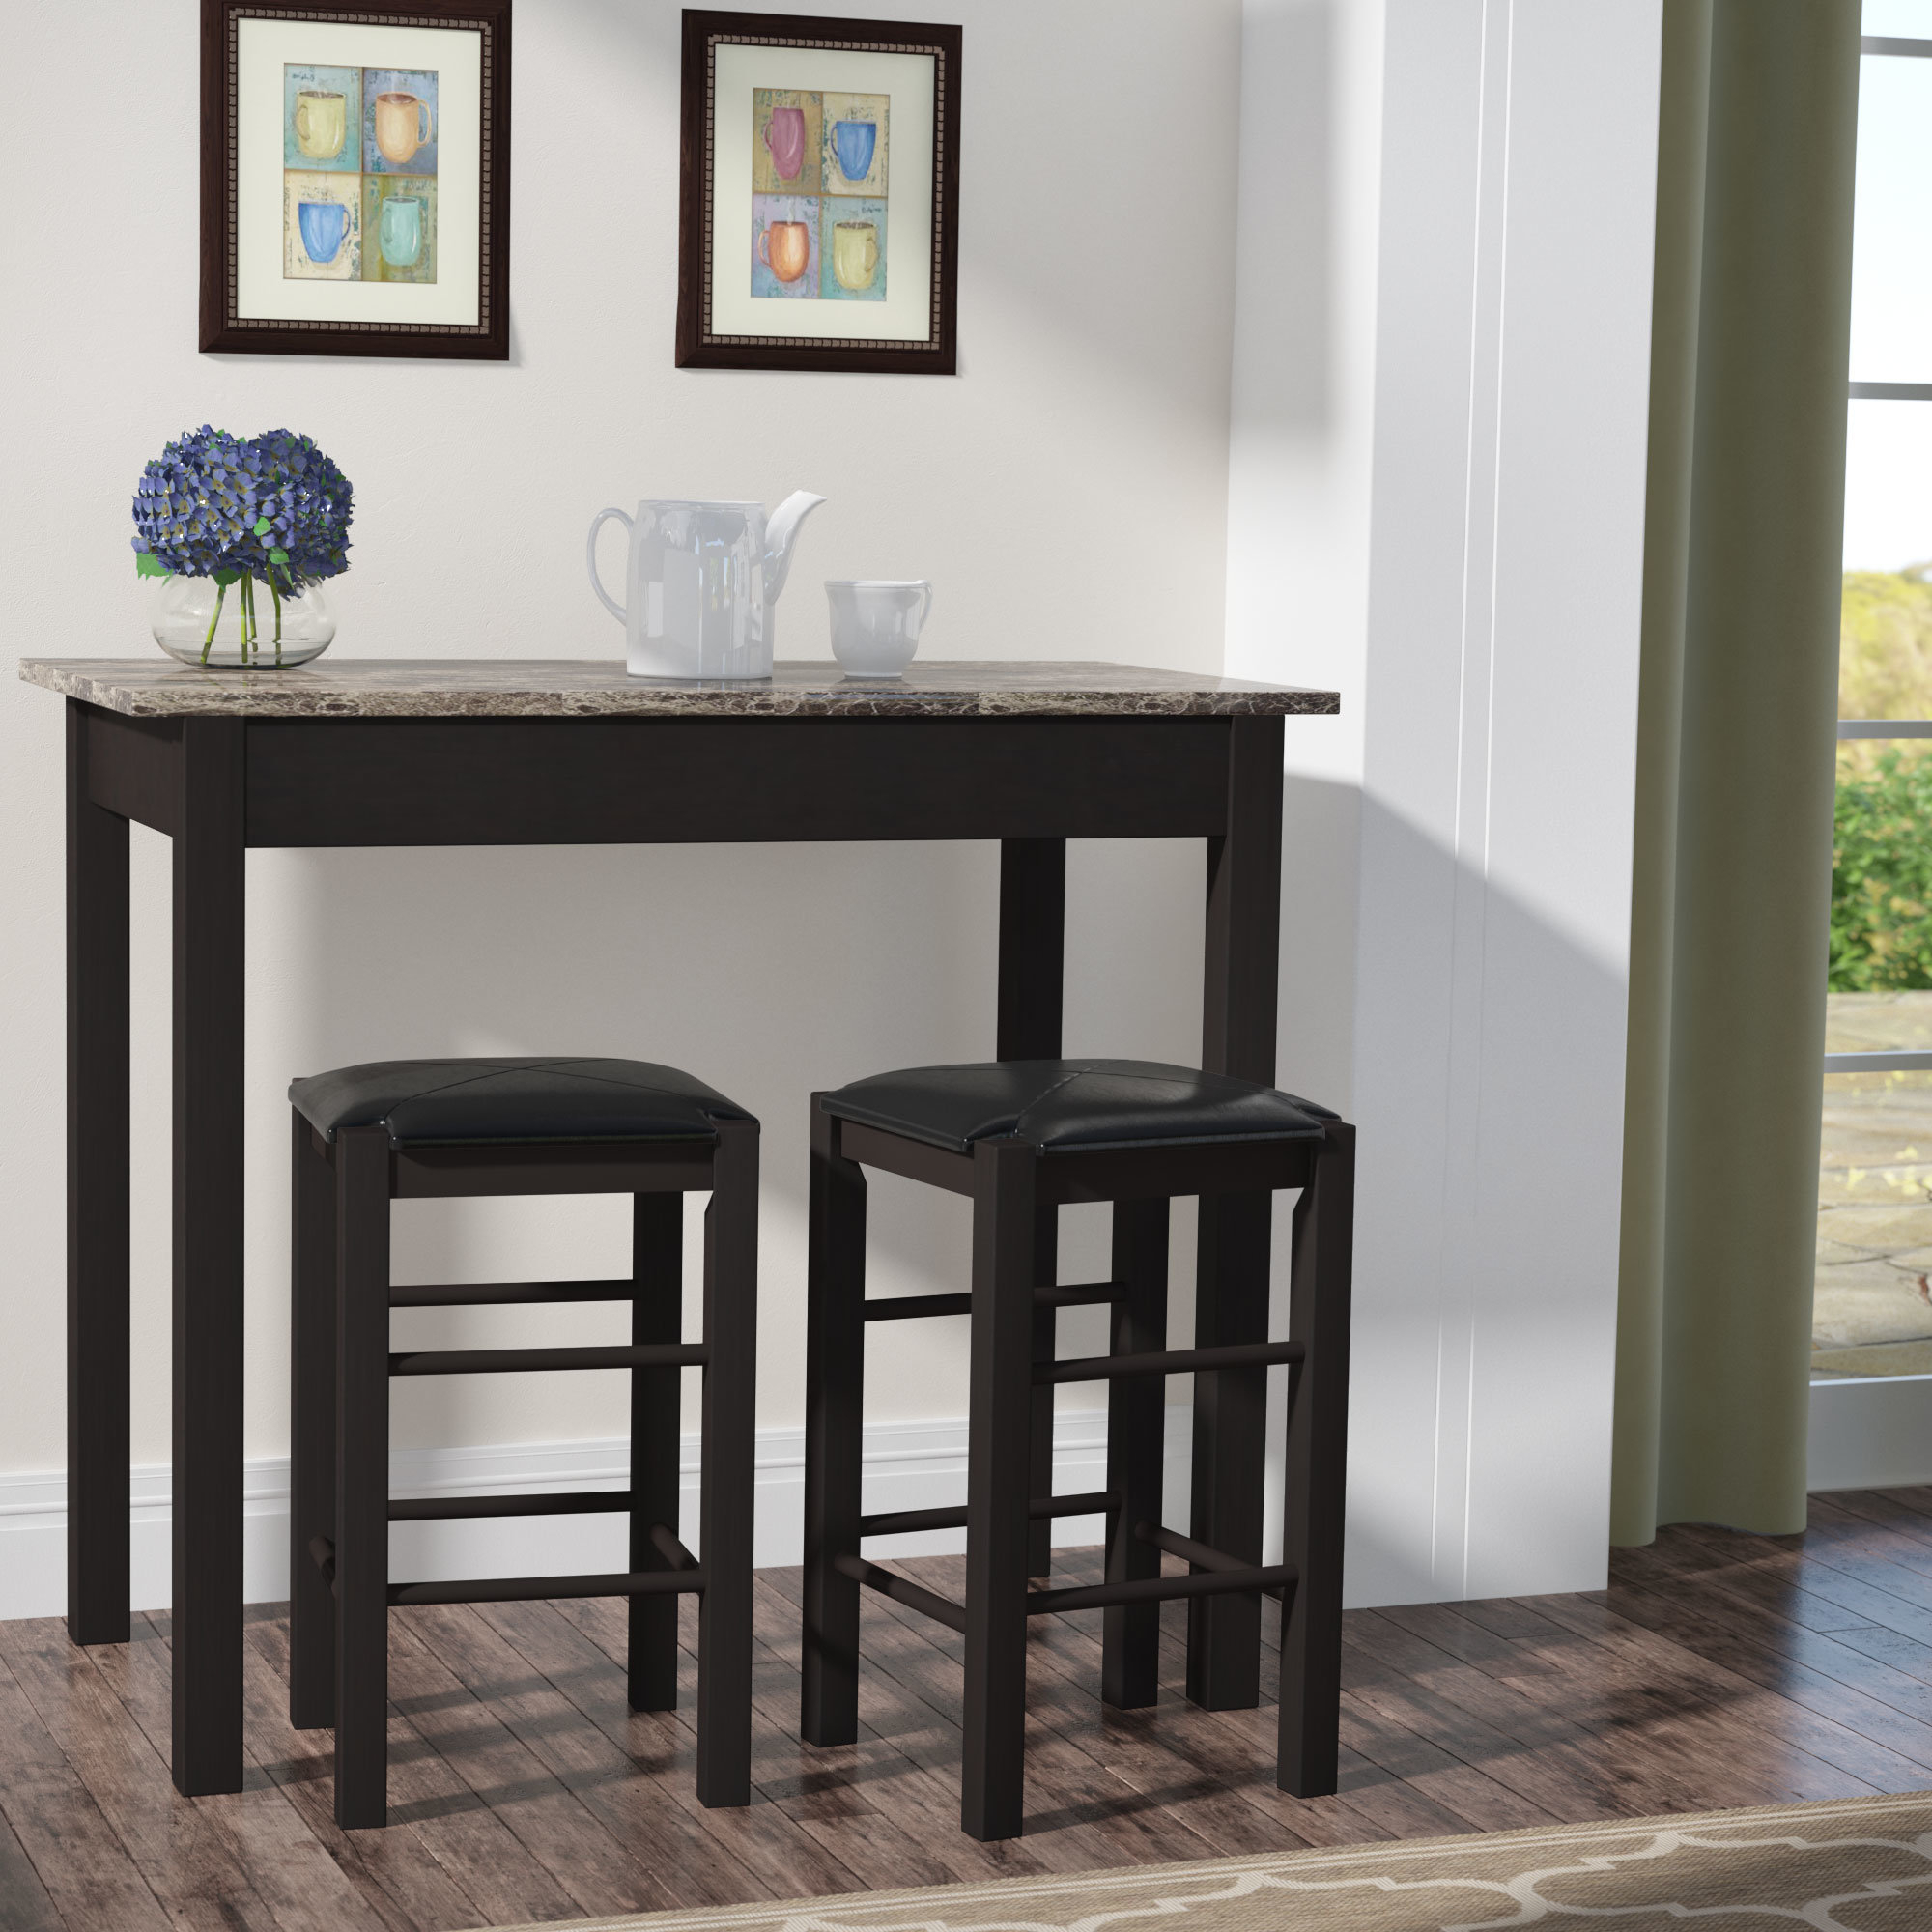 Lillard 3 Piece Breakfast Nook Dining Sets Pertaining To Recent Winston Porter Sheetz 3 Piece Counter Height Dining Set & Reviews (View 14 of 20)